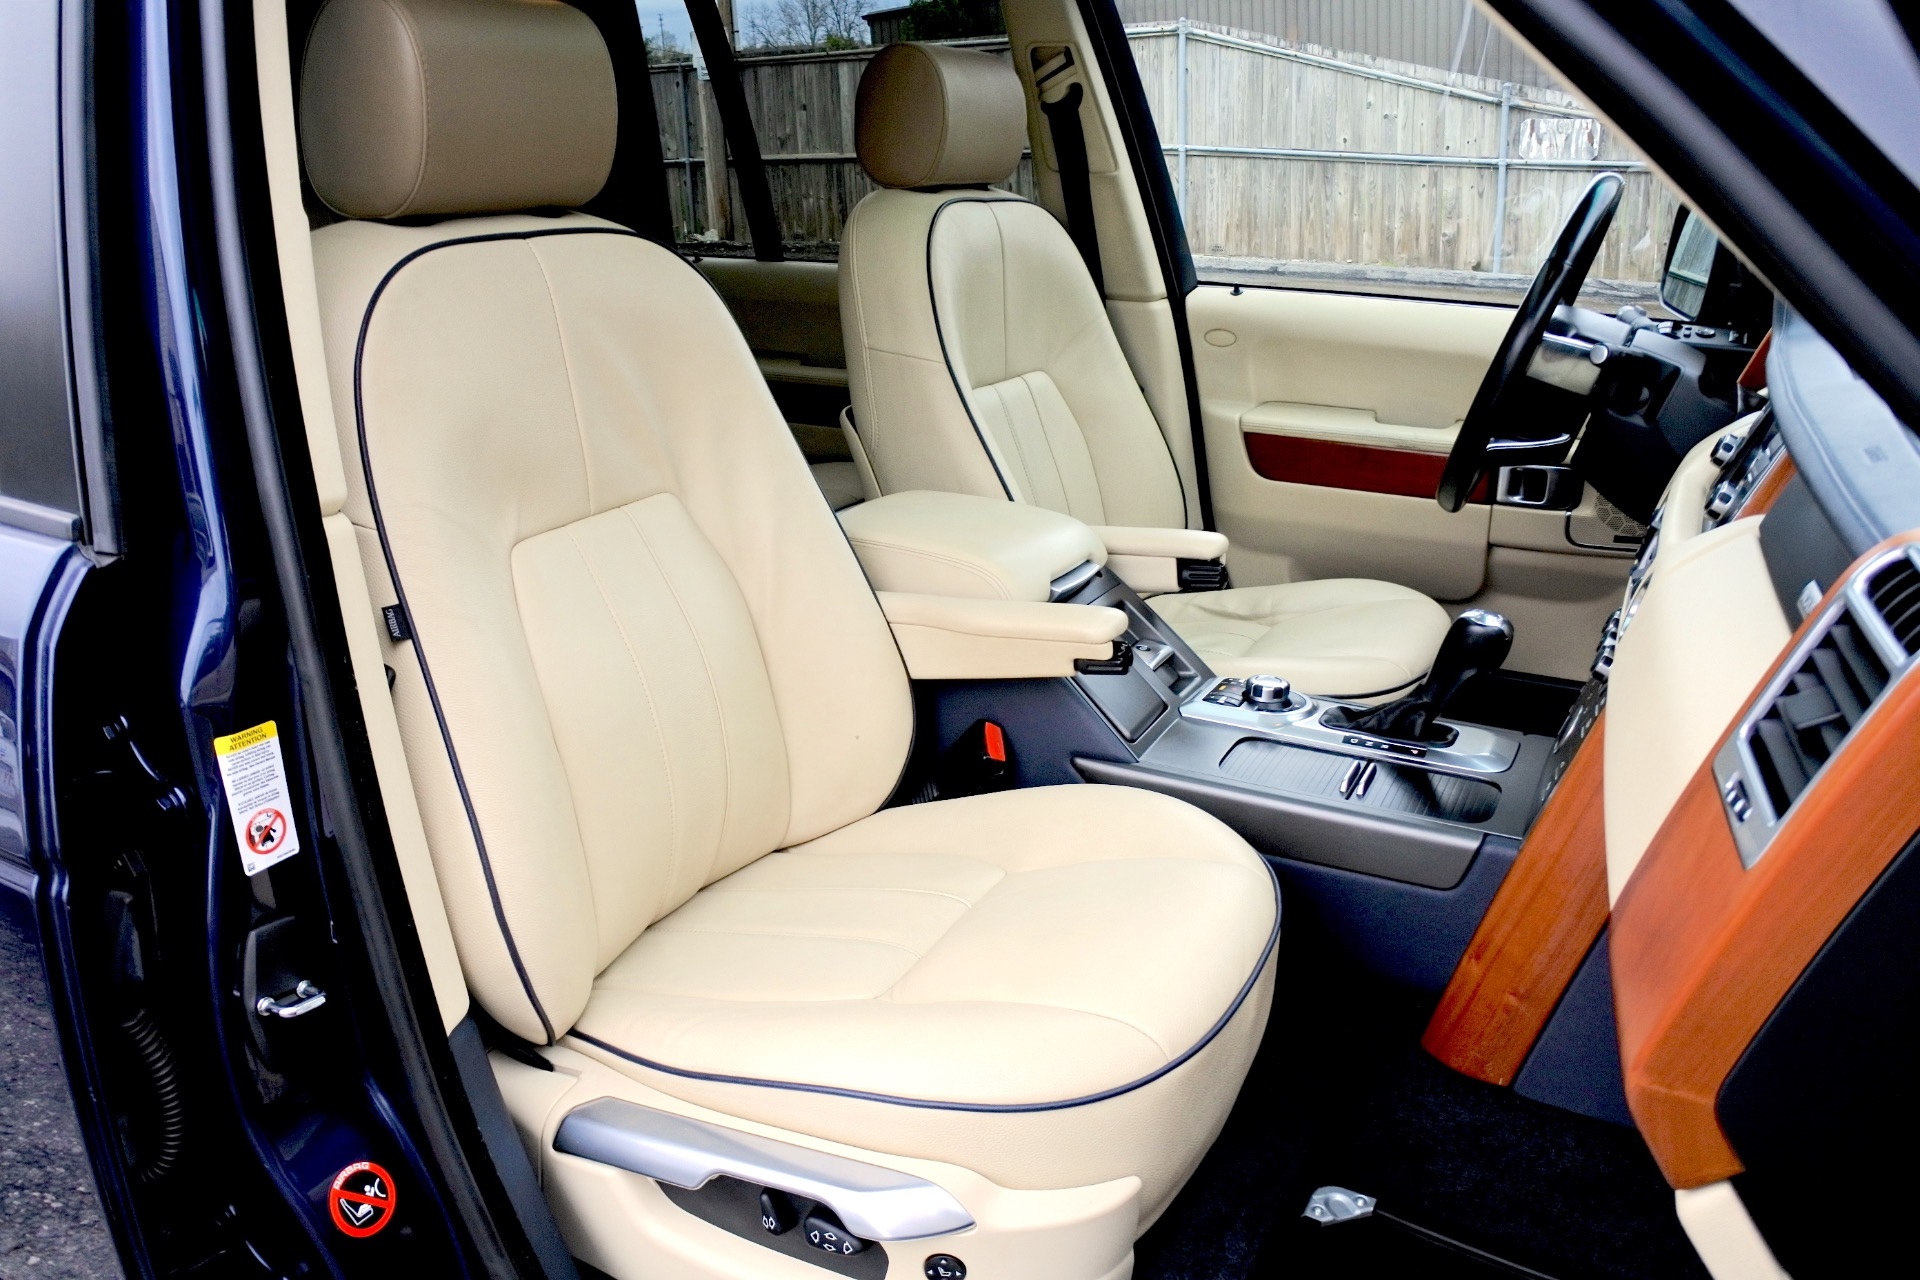 Used 2011 Land Rover Range Rover HSE Used 2011 Land Rover Range Rover HSE for sale  at Metro West Motorcars LLC in Shrewsbury MA 20